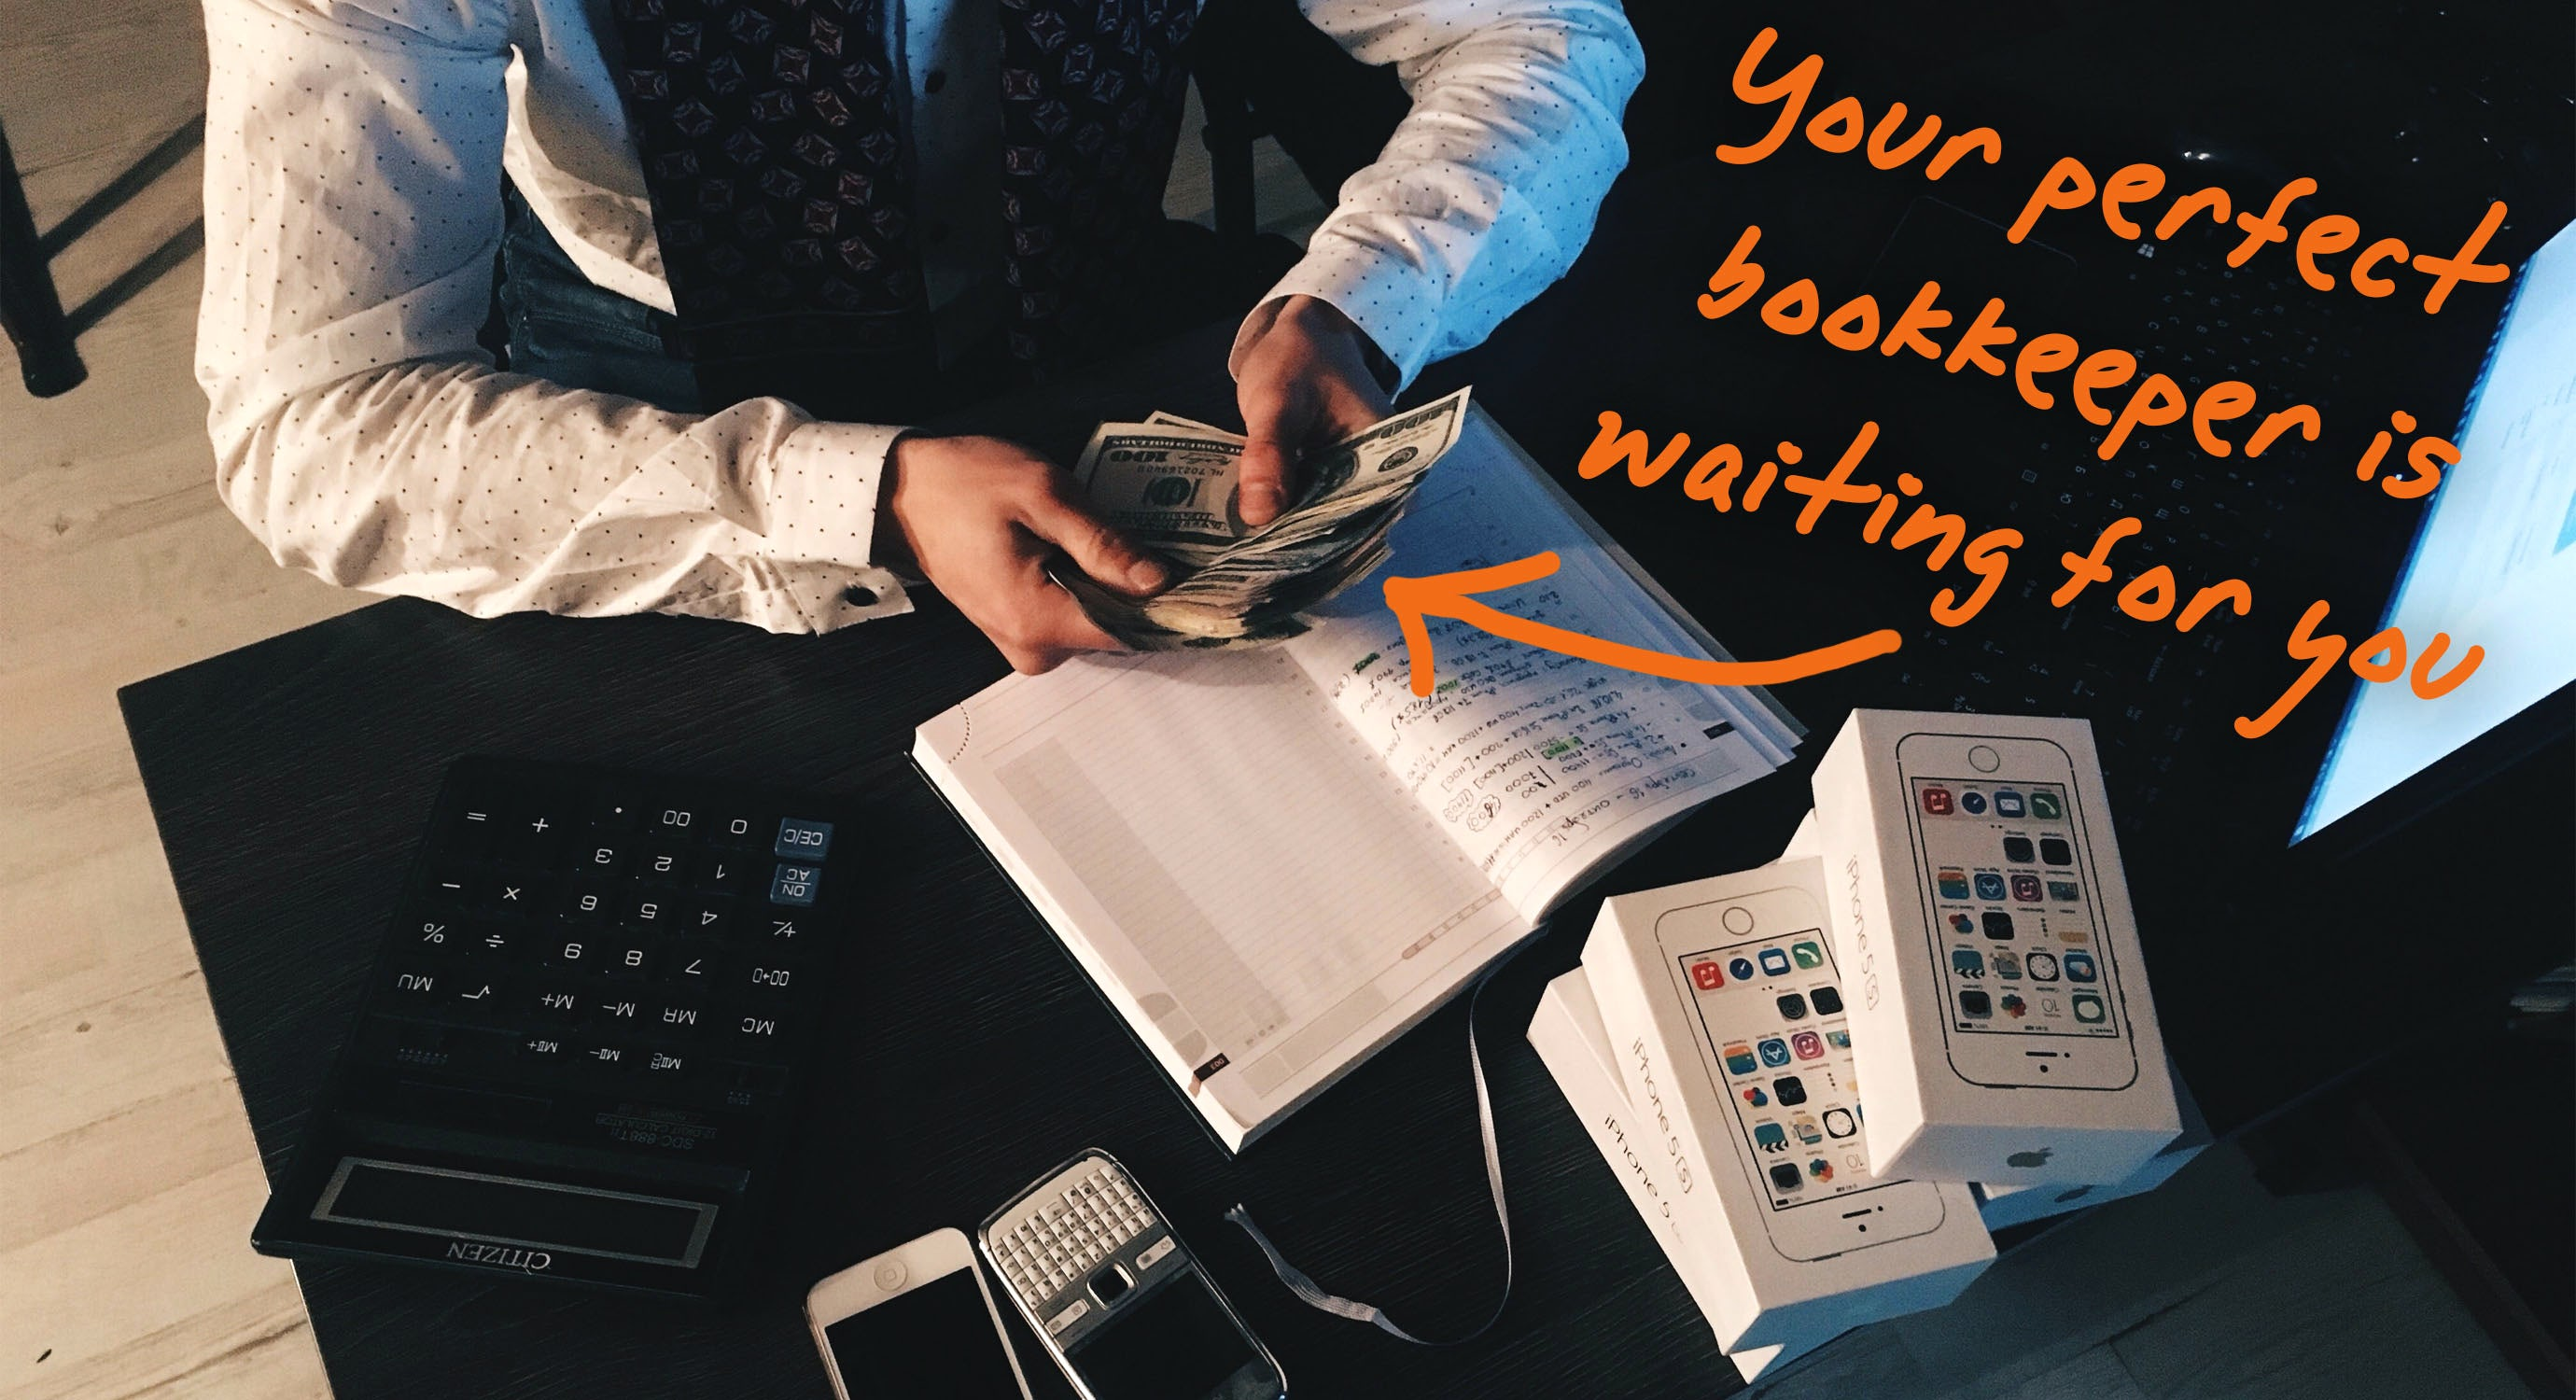 Part Time Bookkeeper - Get More Done in 2020